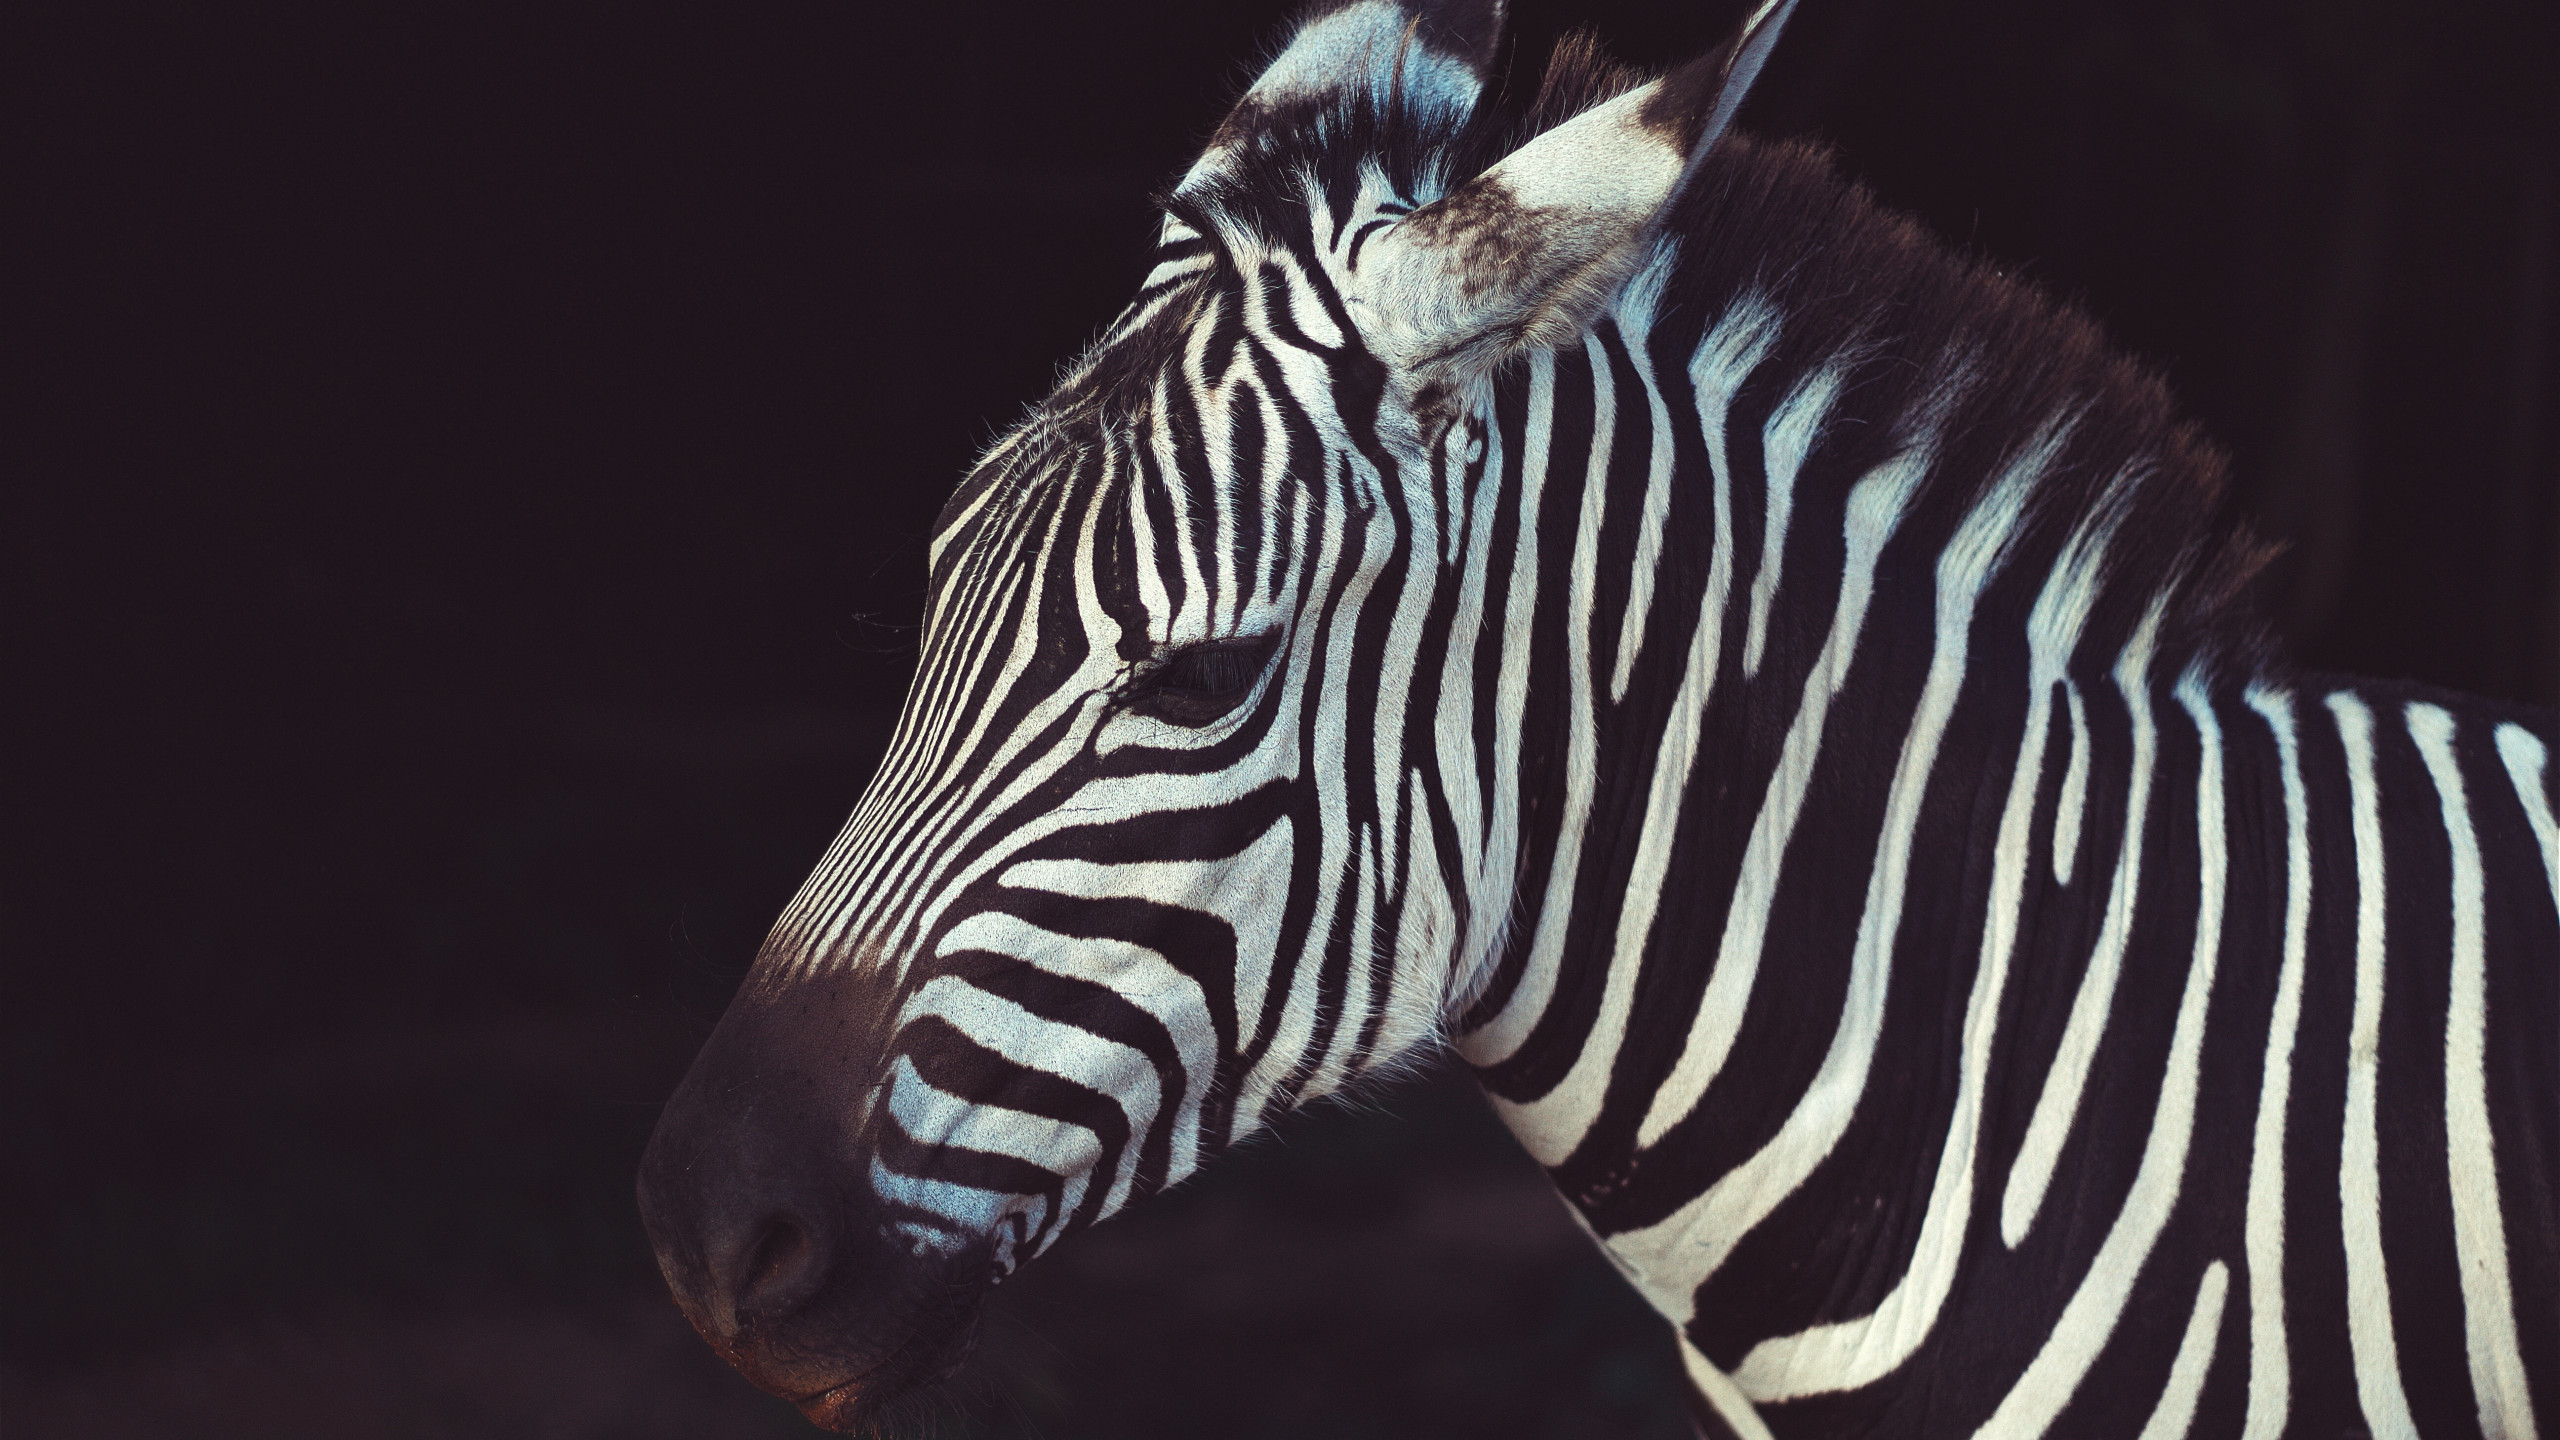 Zebra portrait from Greeneville Zoo, USA | 2560x1440 wallpaper